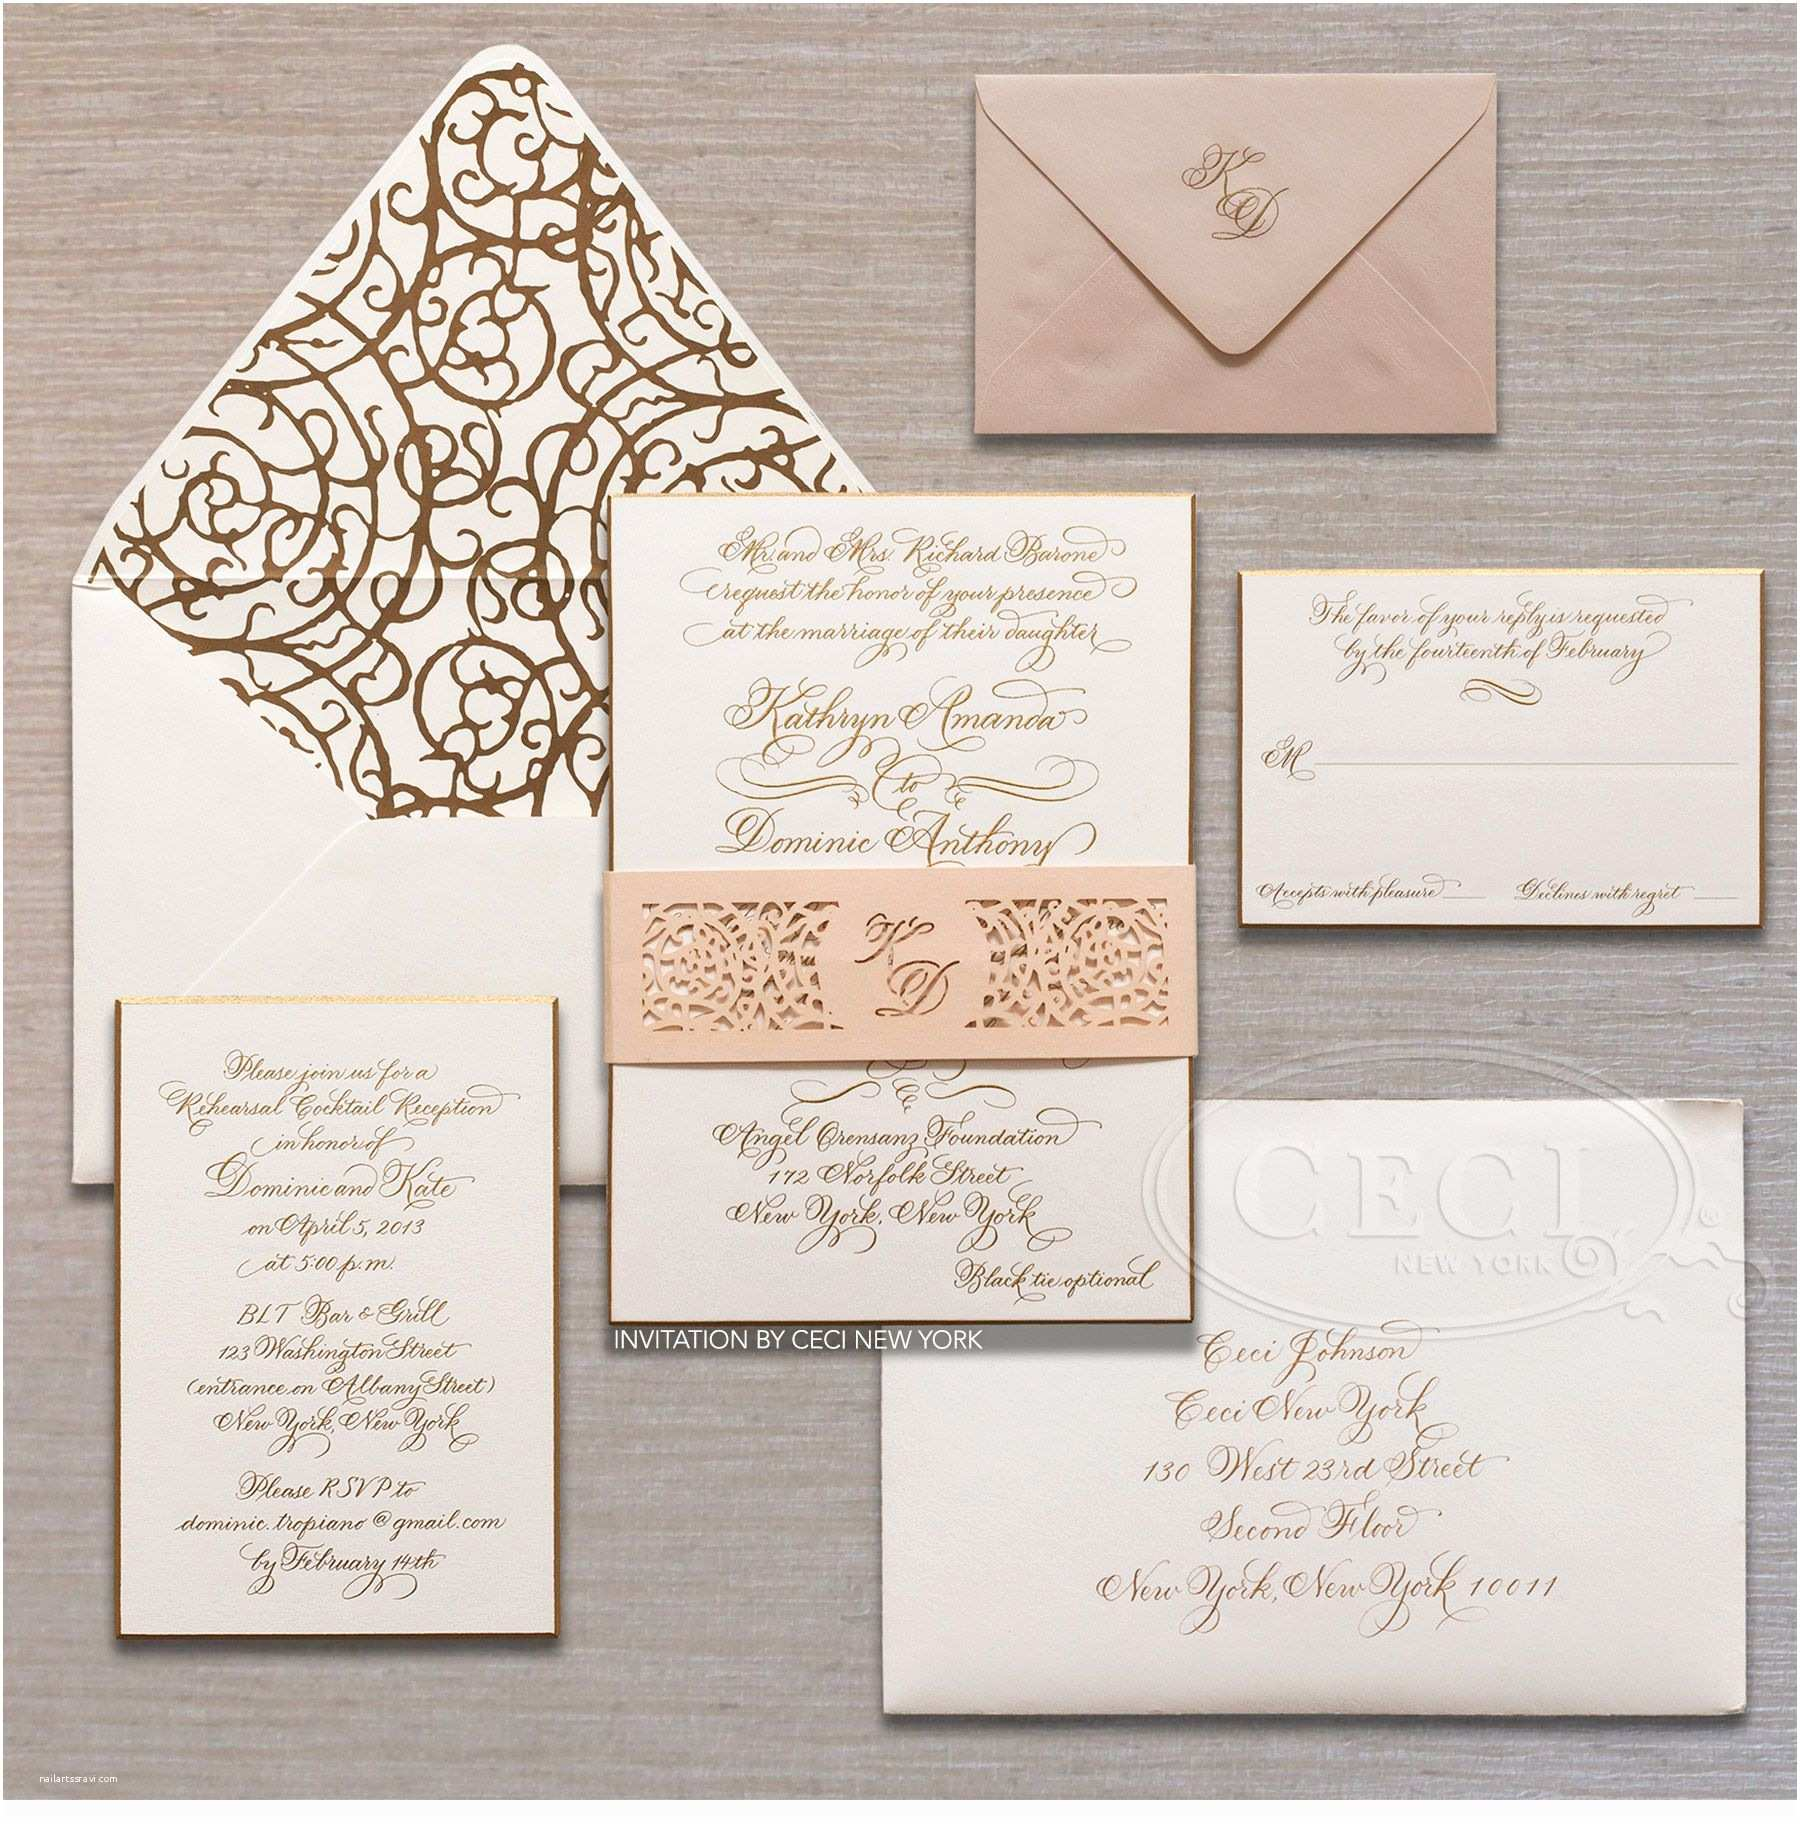 New York Wedding Invitations Luxury Wedding Invitations by Ceci New York